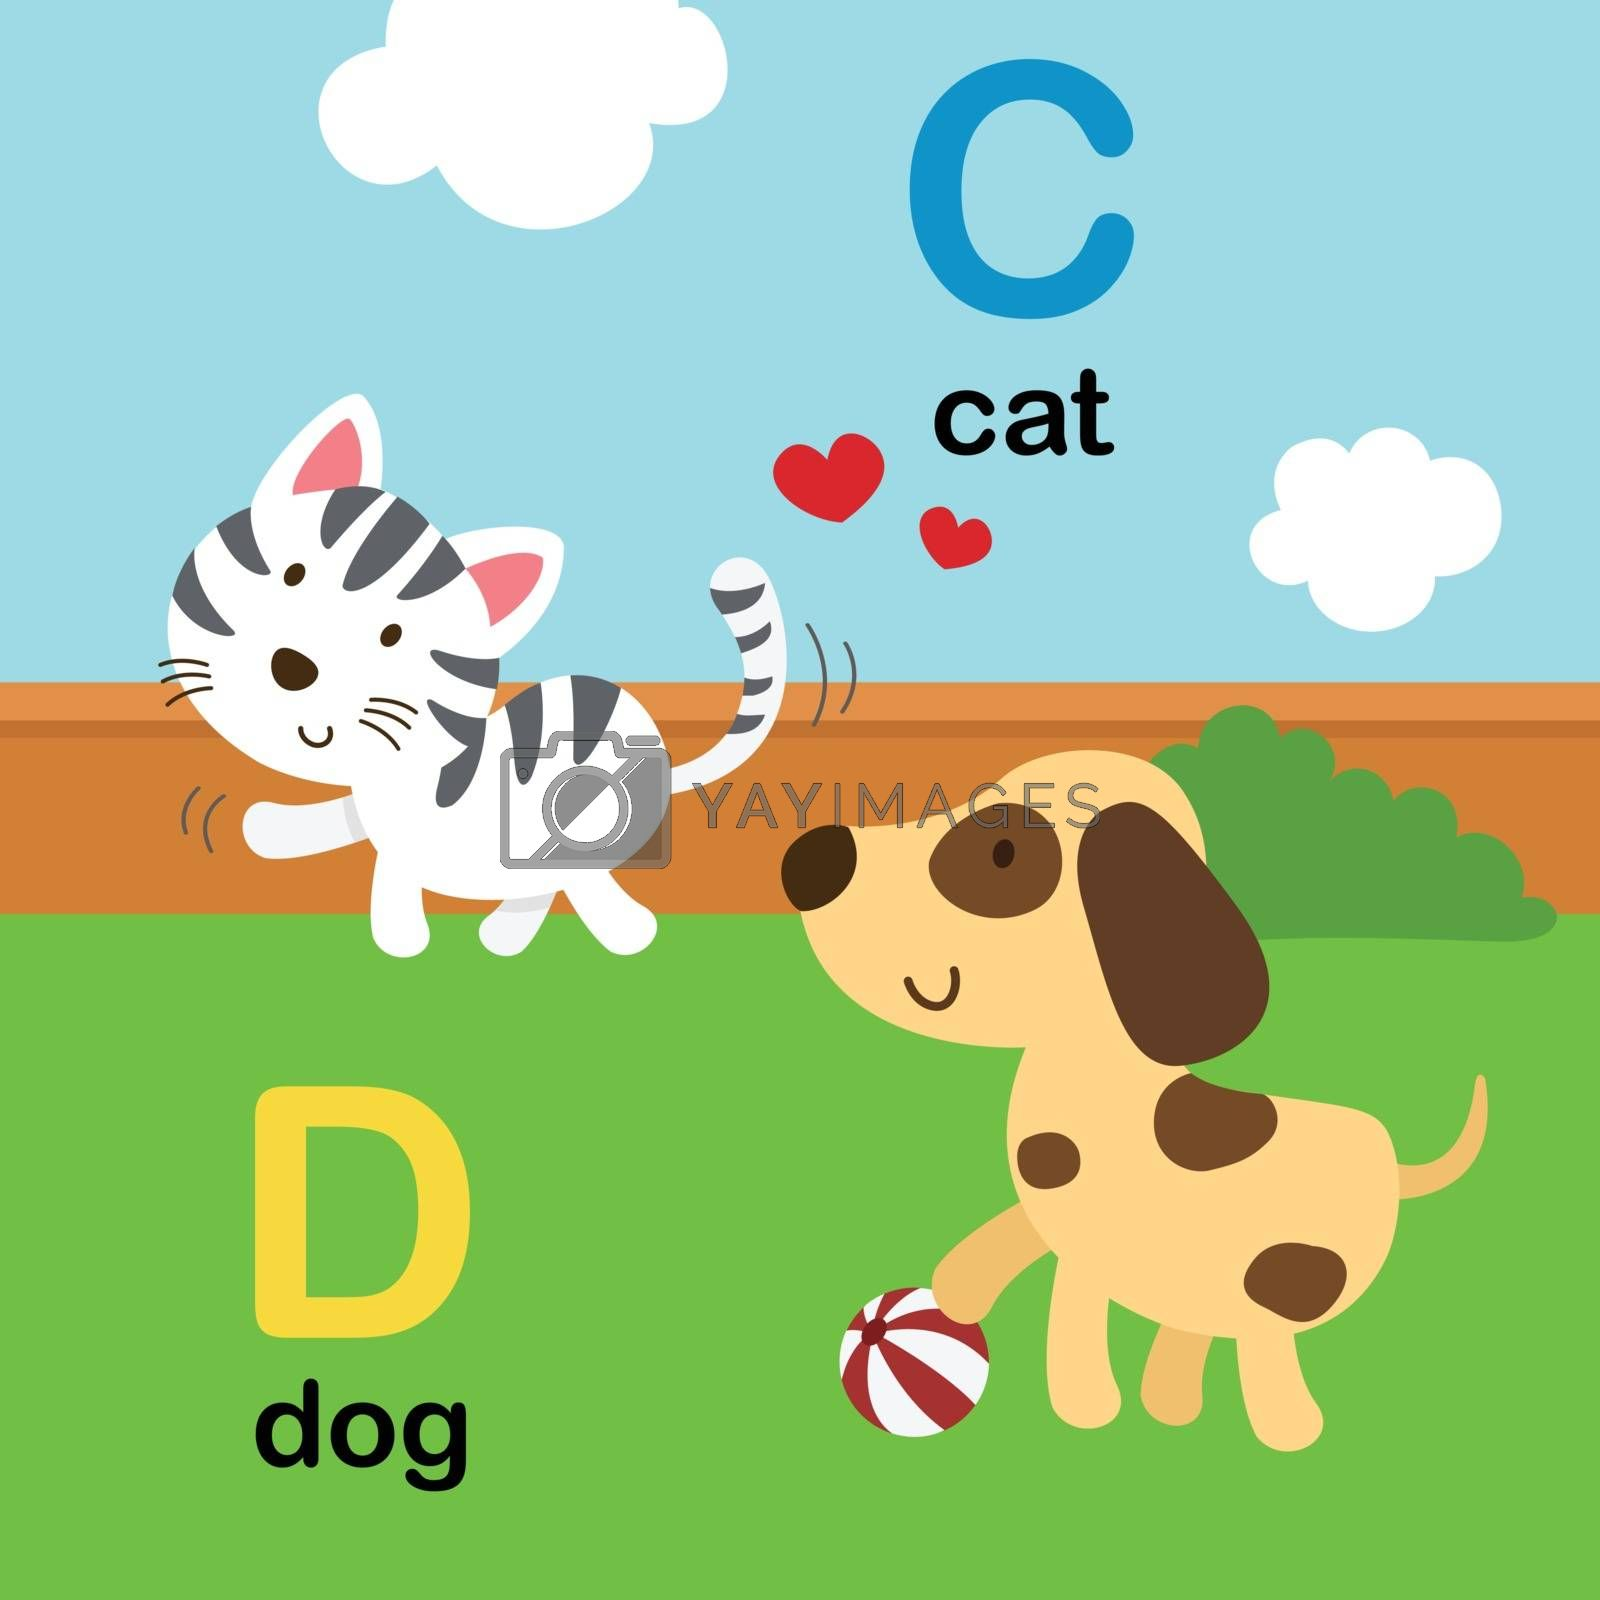 Alphabet Letter C-cat,D-dog,vector illustration